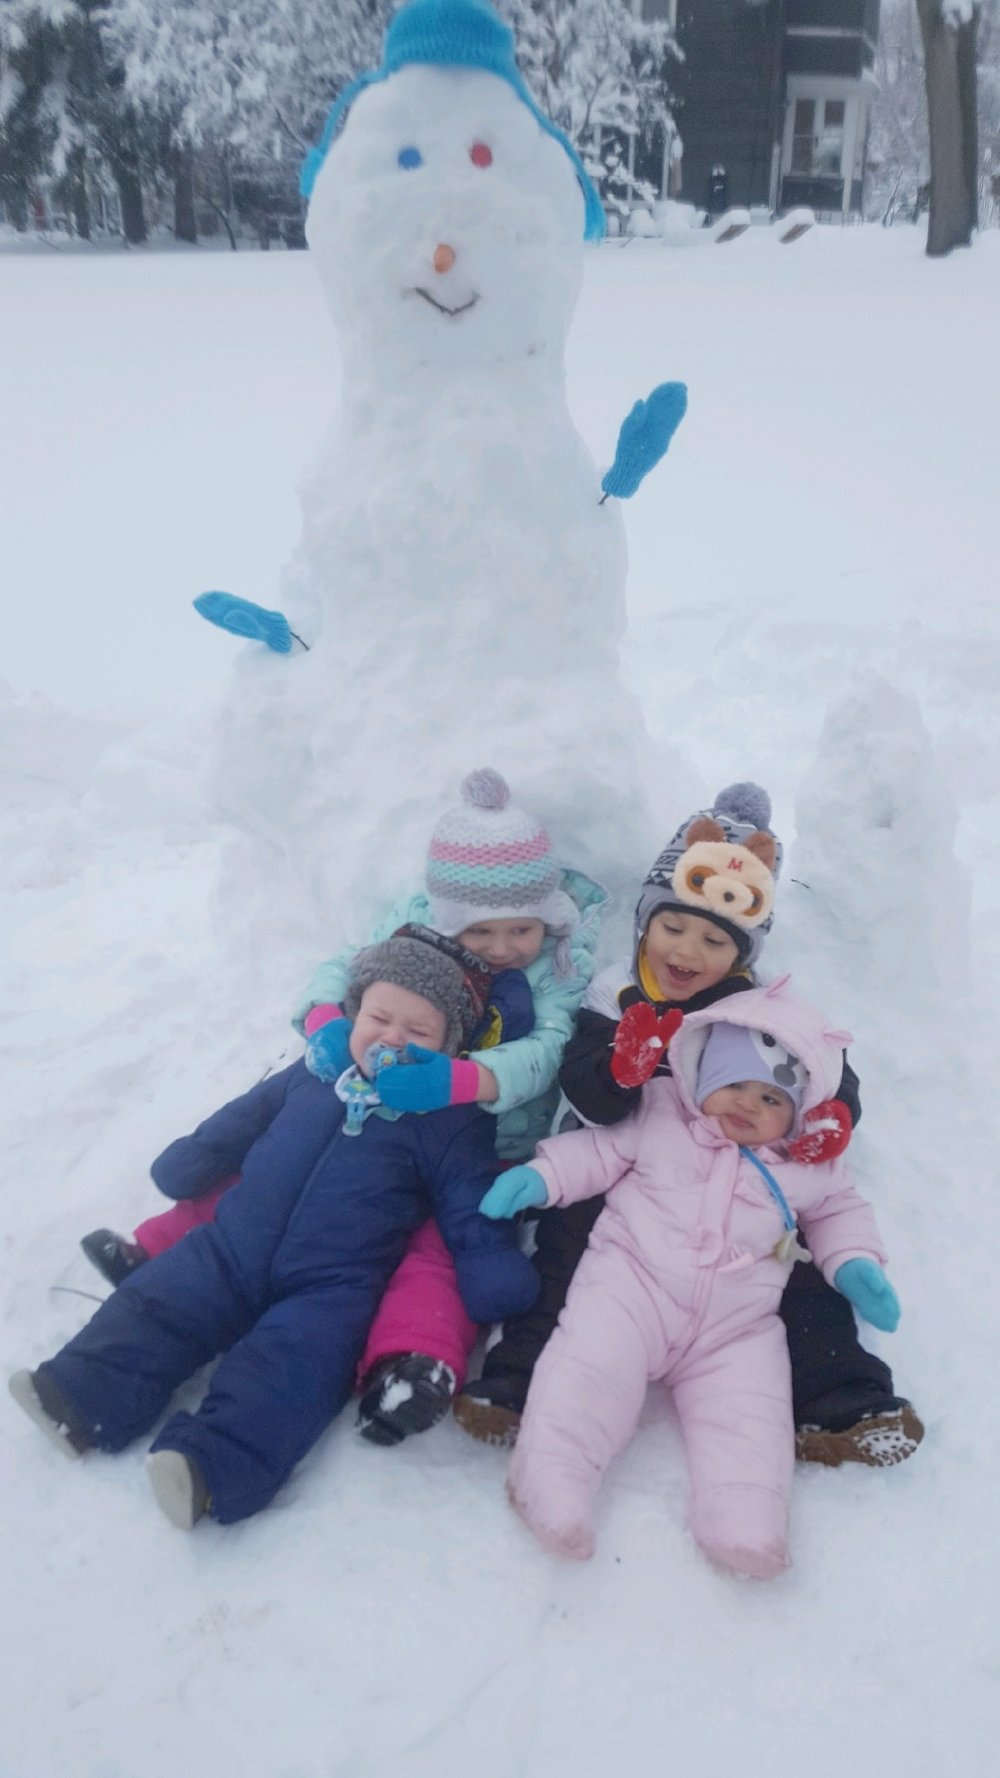 Not all of our little ones appreciated the new fallen snow!